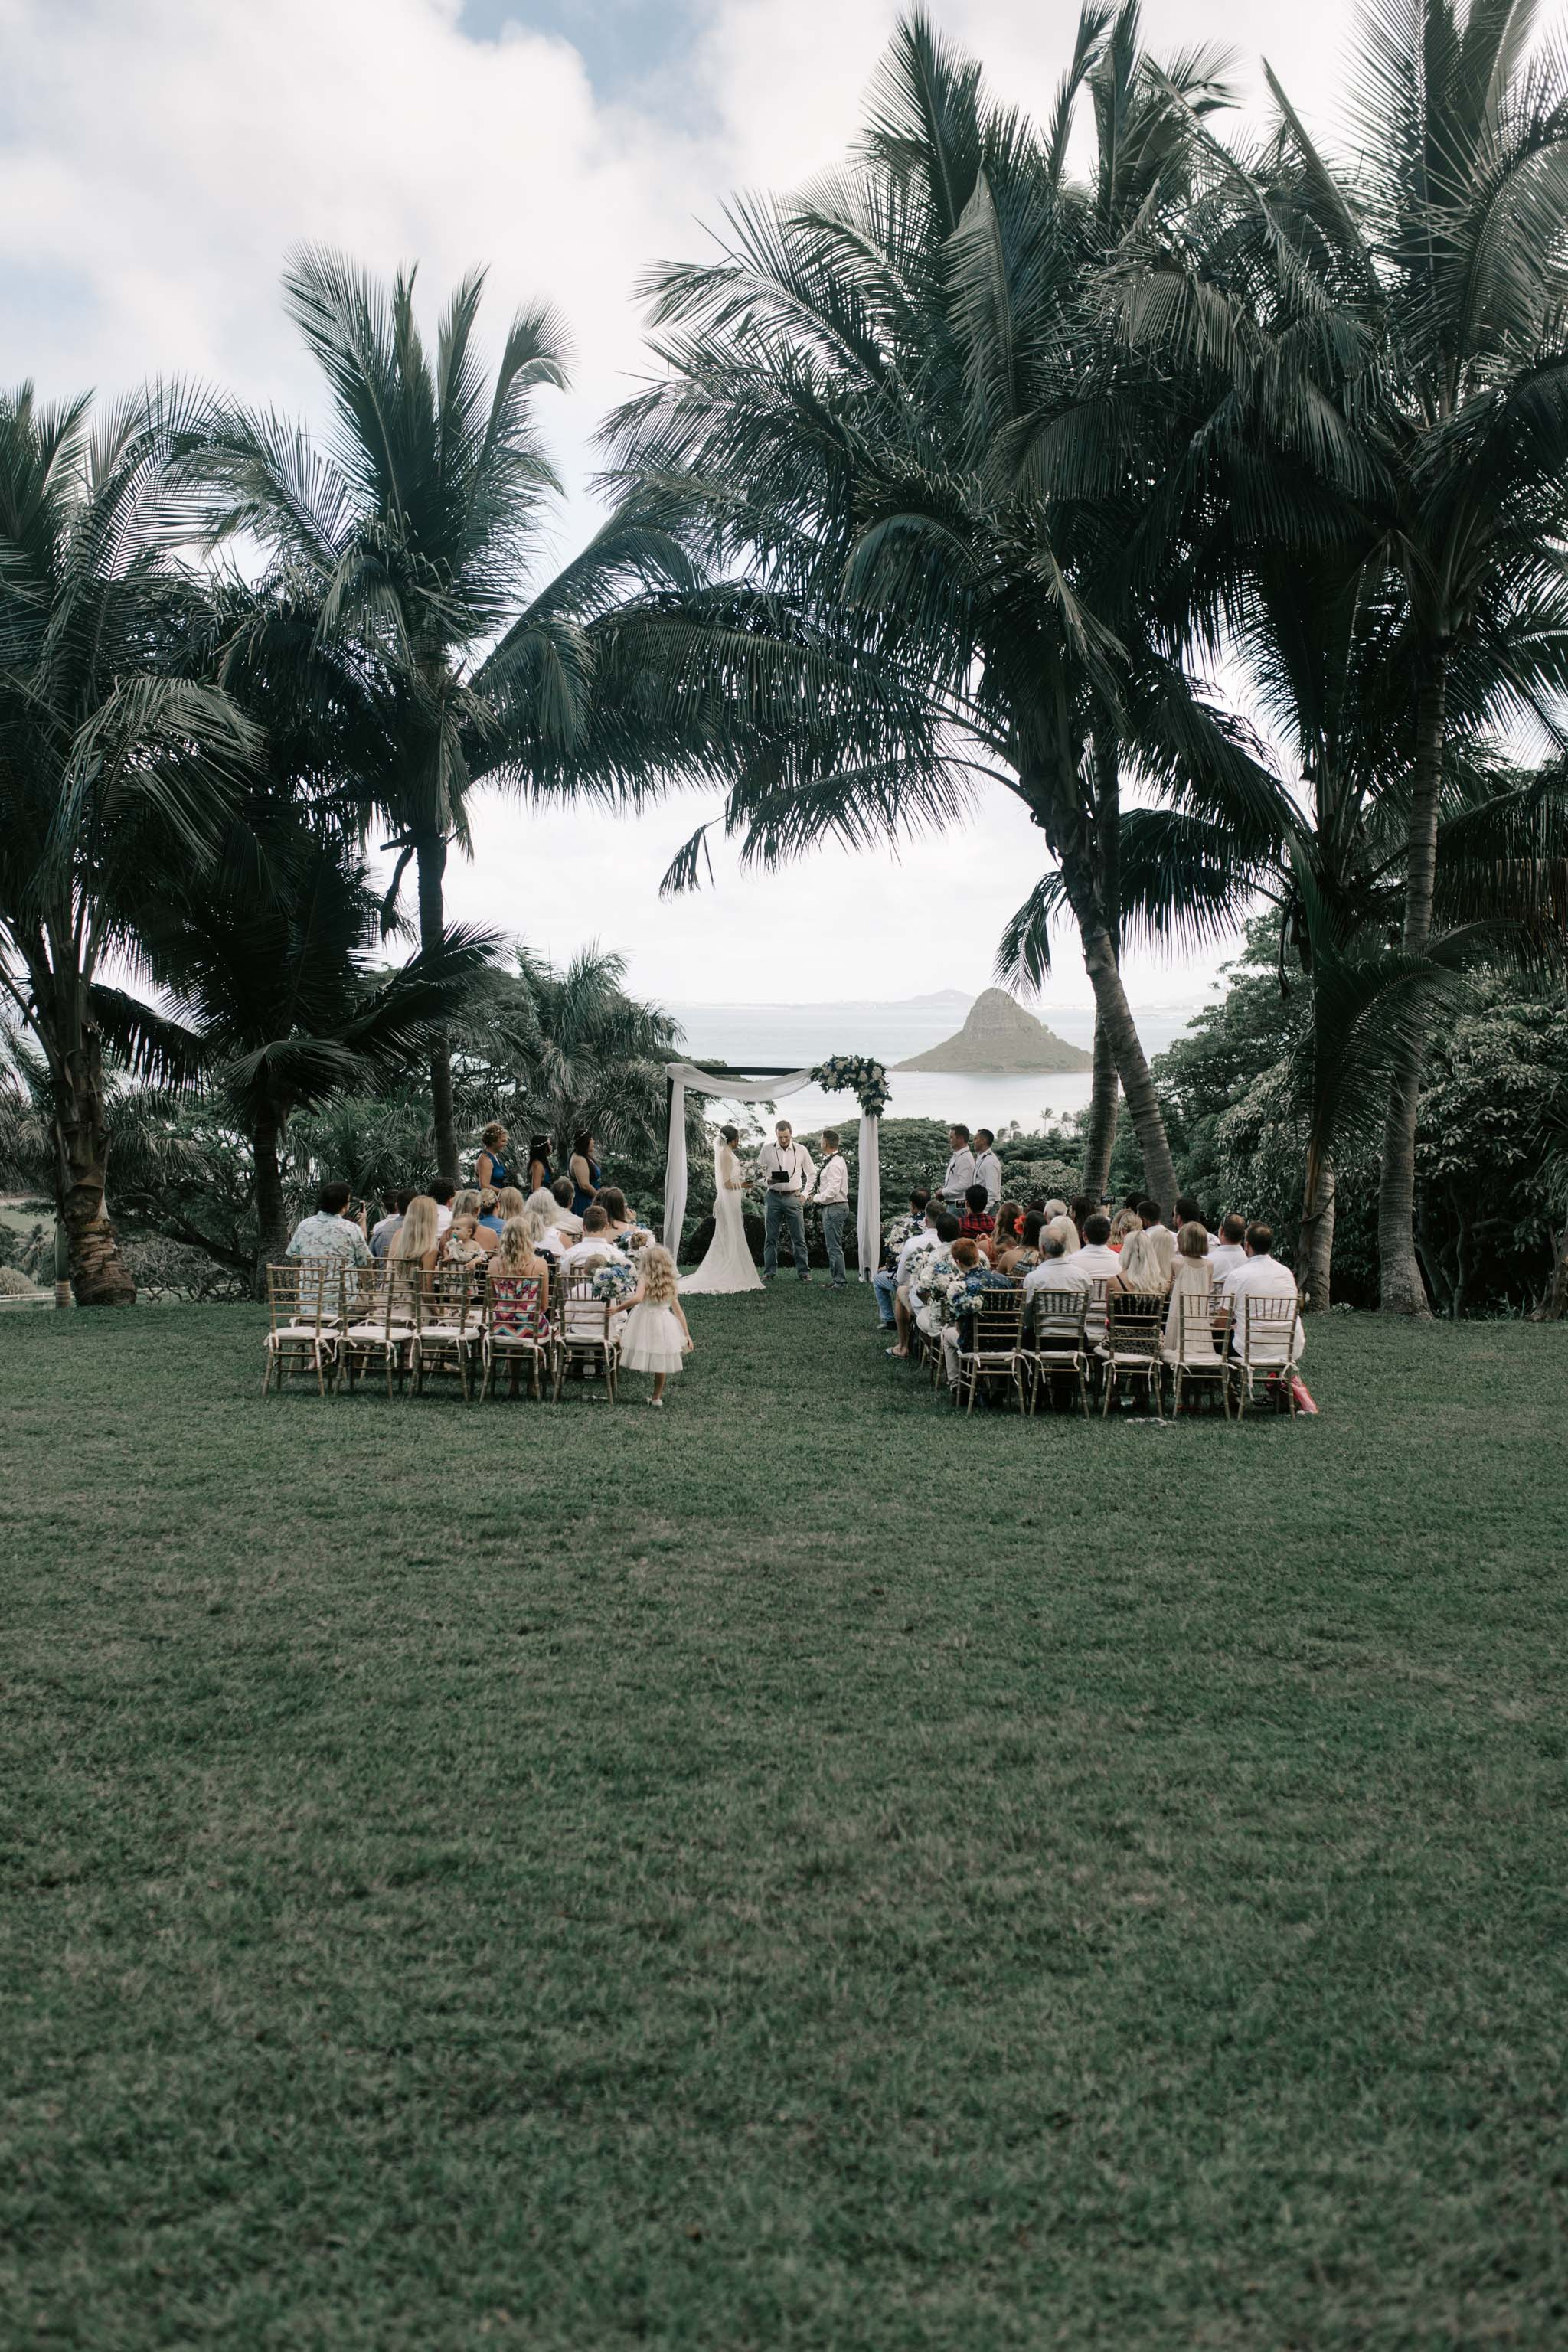 Kualoa Ranch Paliku Gardens Wedding Ceremony. Photography by Hawaii wedding photographer Desiree Leilani